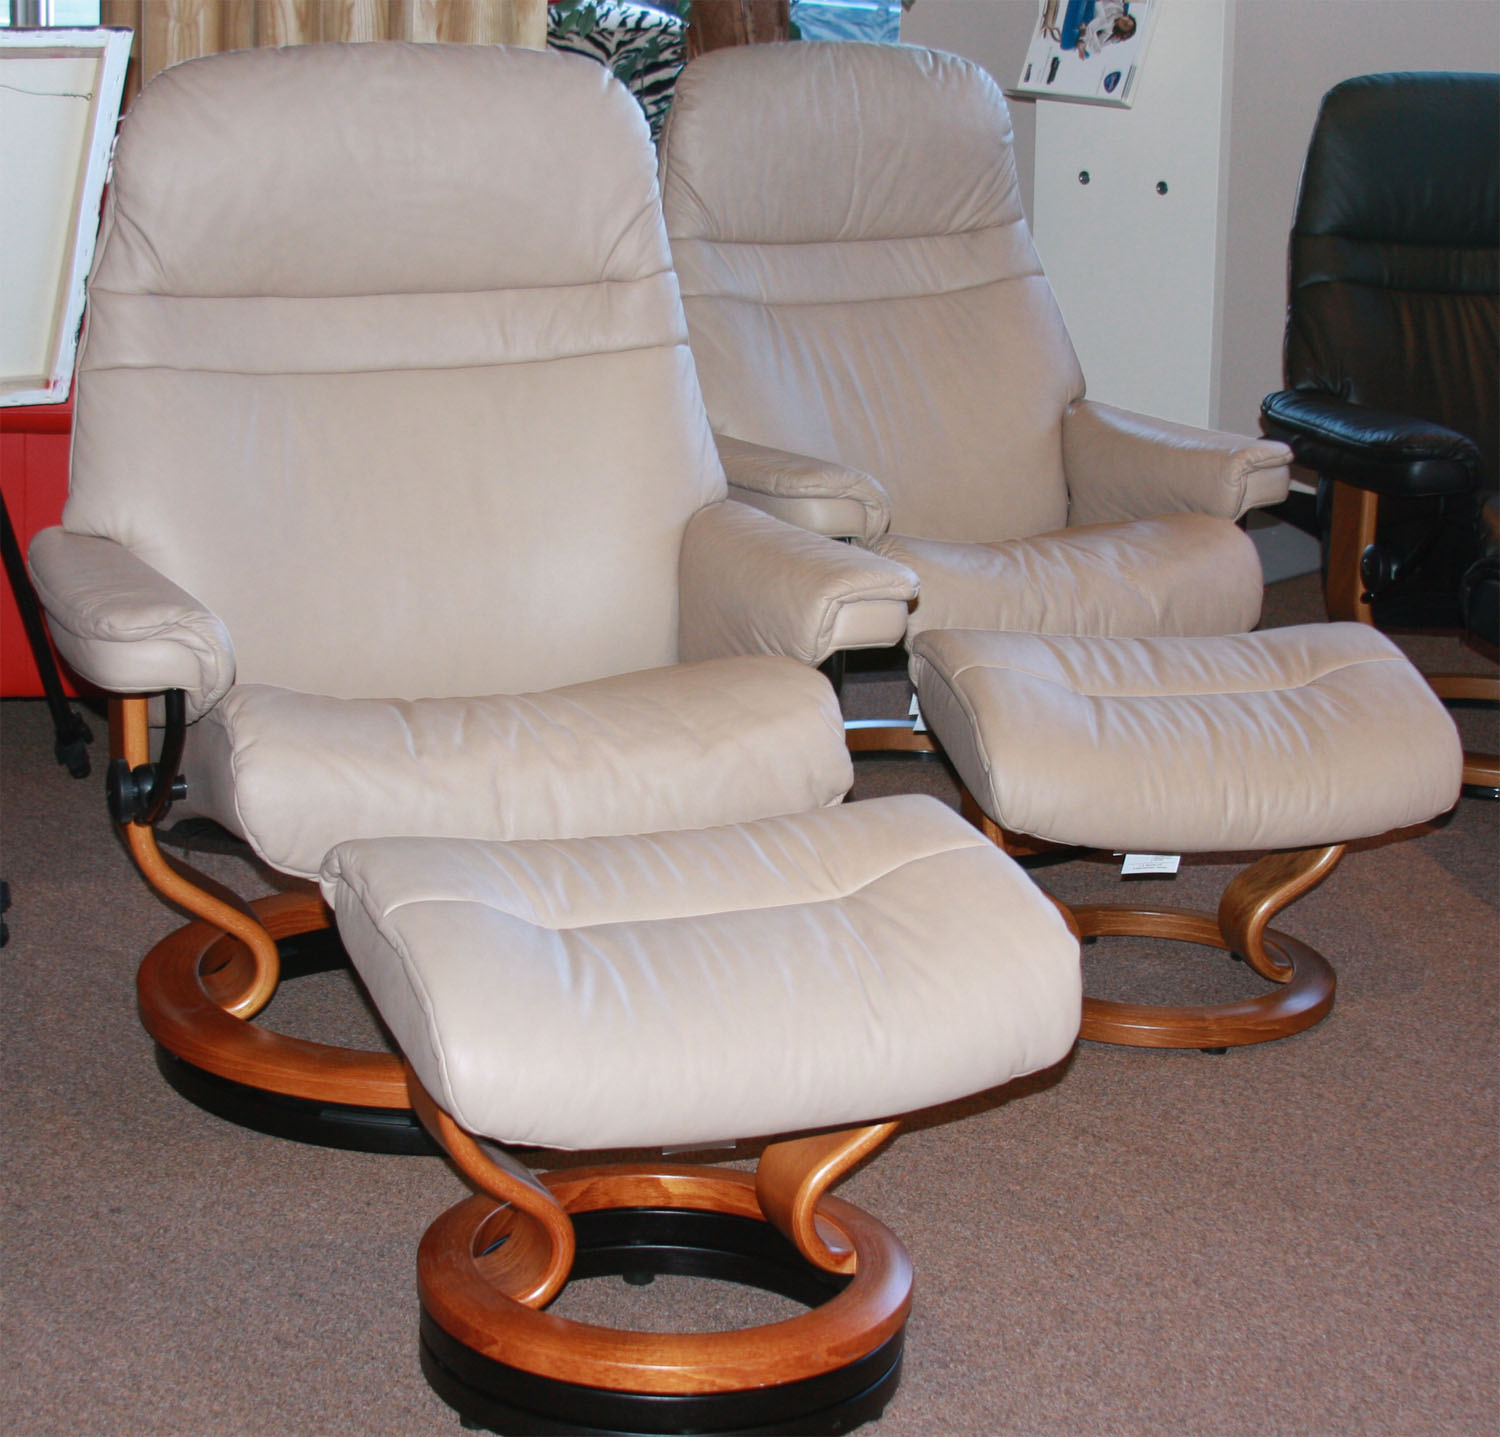 Stressless Sunrise Recliner in Sand Paloma Leather : stressless recliner ebay - islam-shia.org